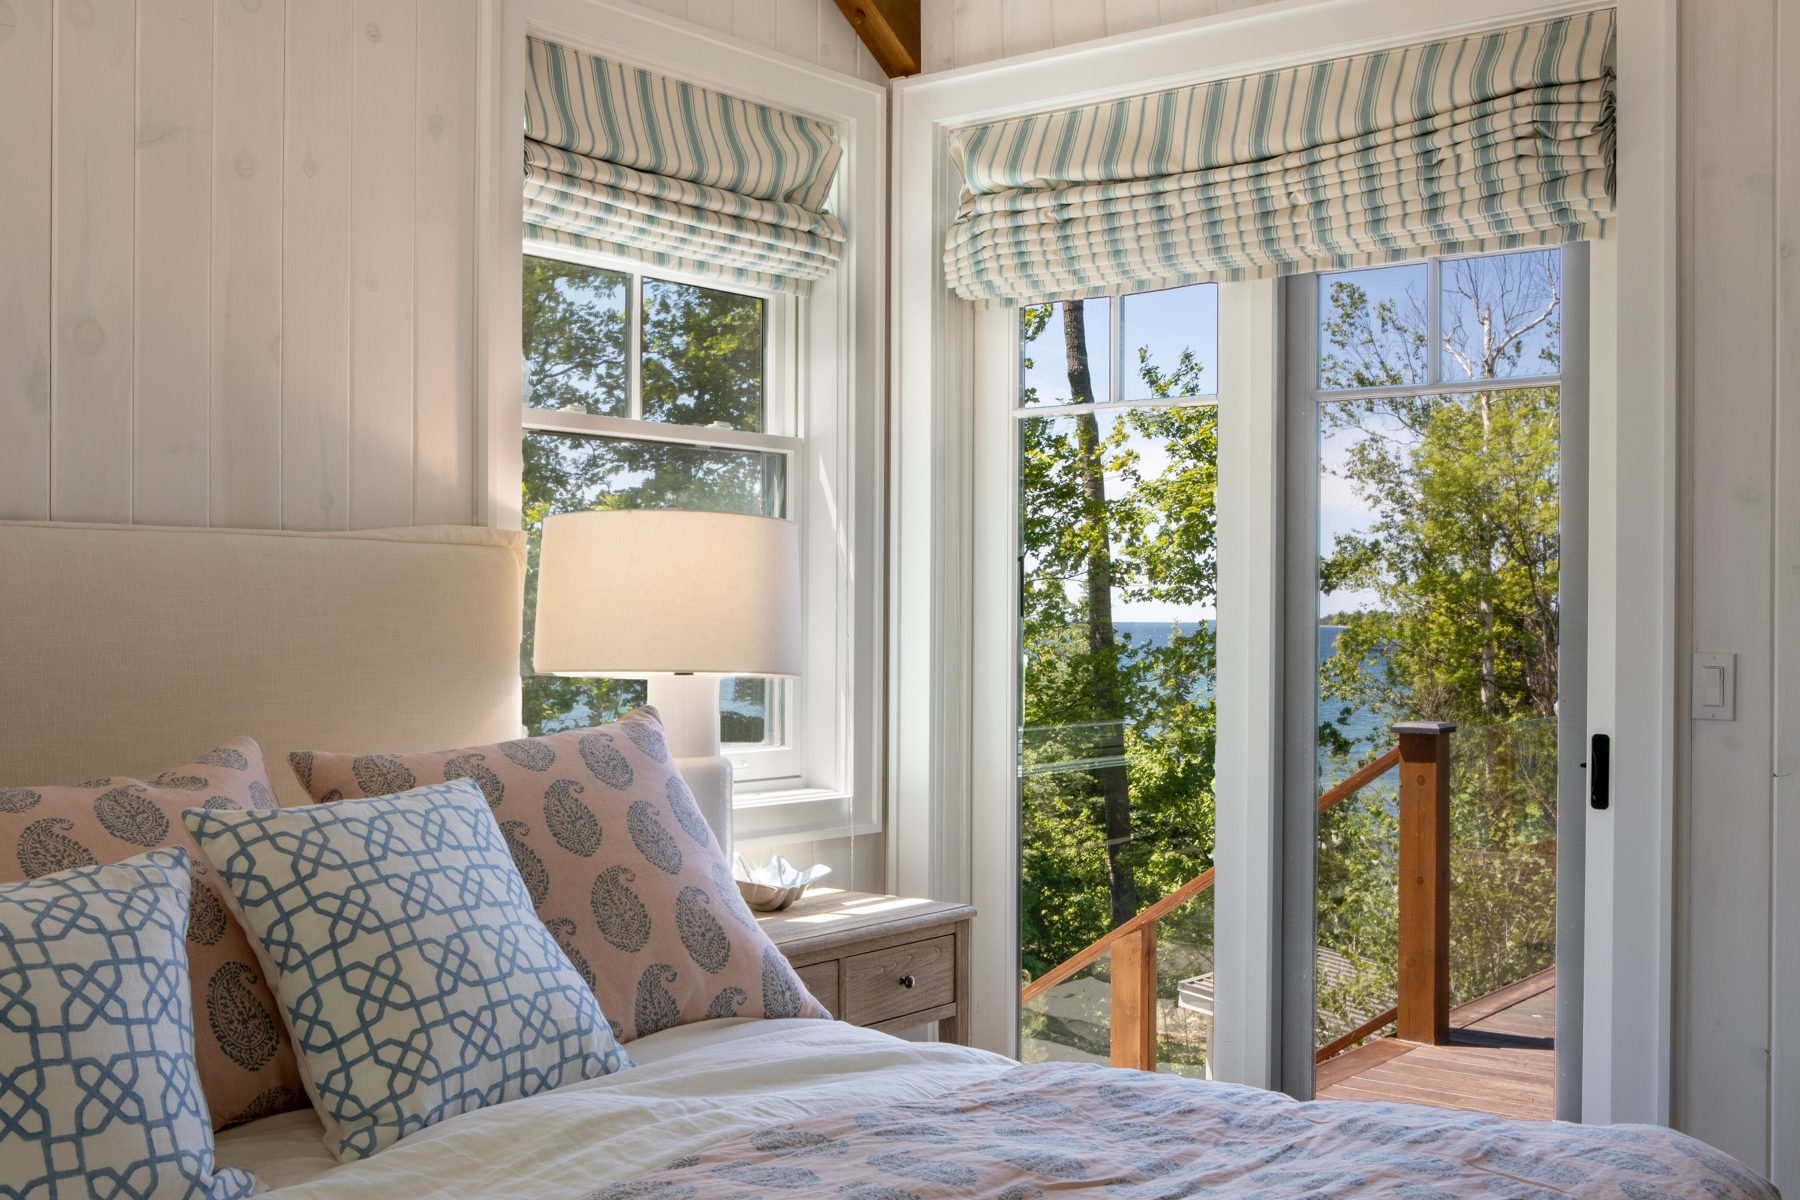 Normerica-Timber-Homes-Timber-Frame-Portfolio-Beachside-Bliss-Interior-Master-Bedroom-View-Door-to-Deck